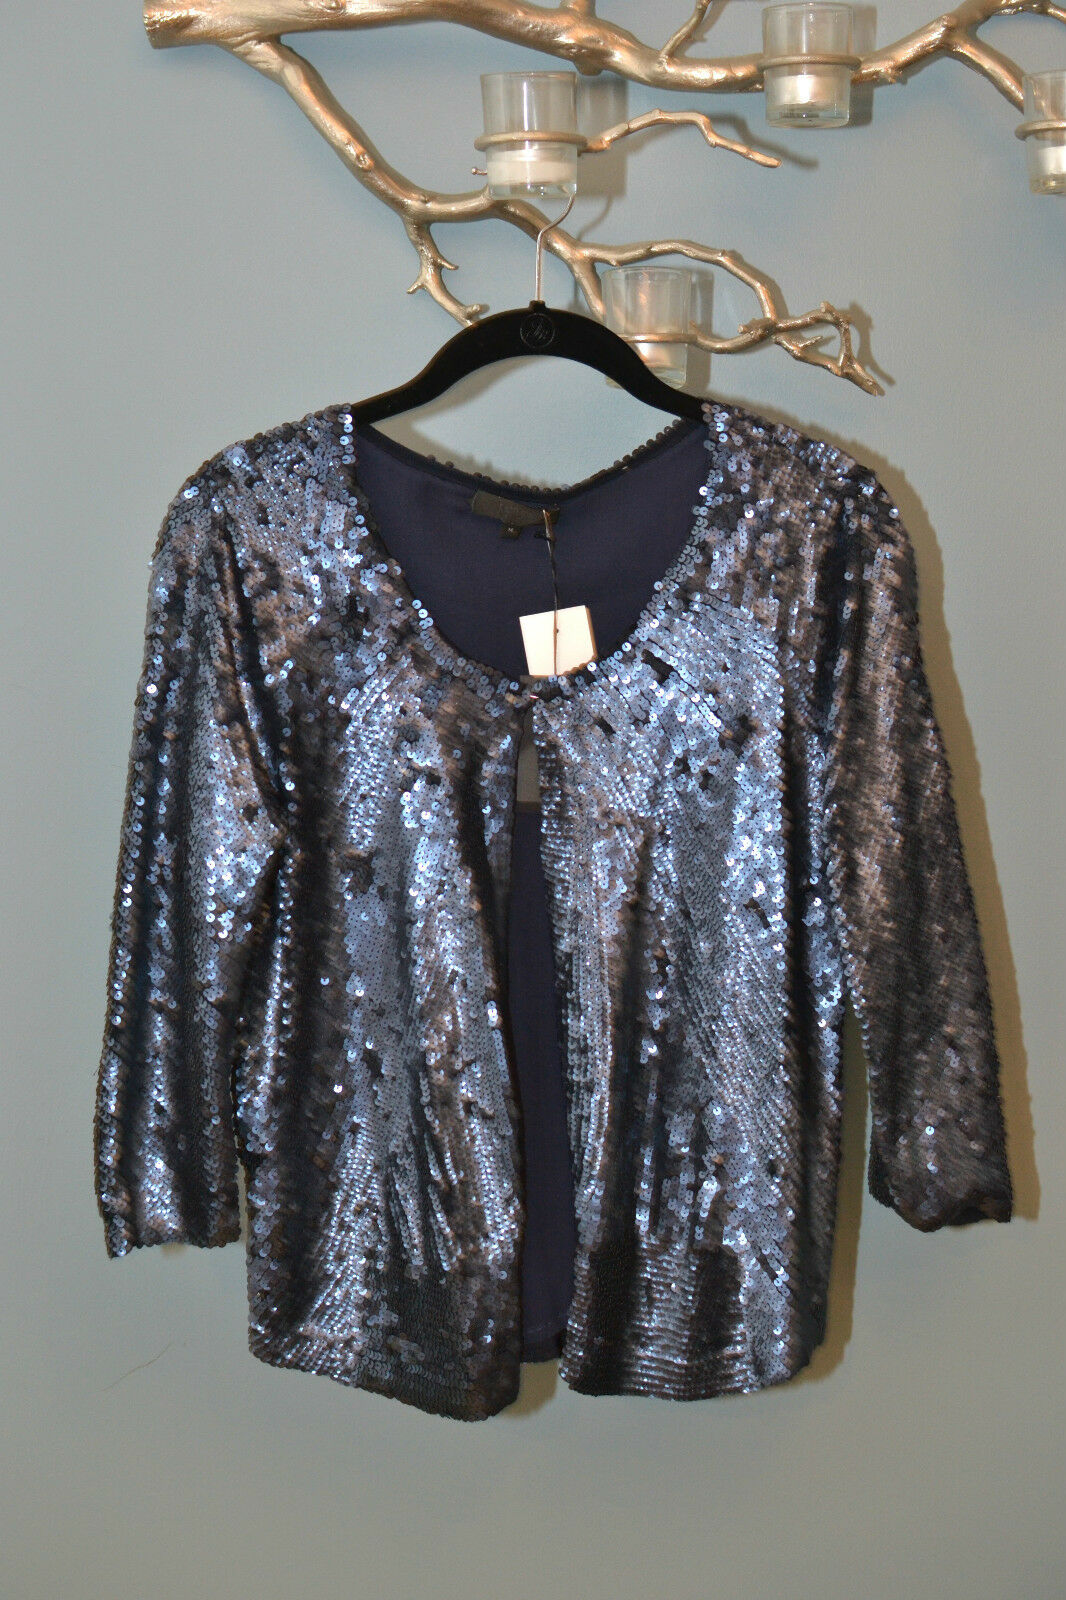 800 J.Crew COLLECTIONS navy Blau sequin jacket bolero oben cover up oben M NWT